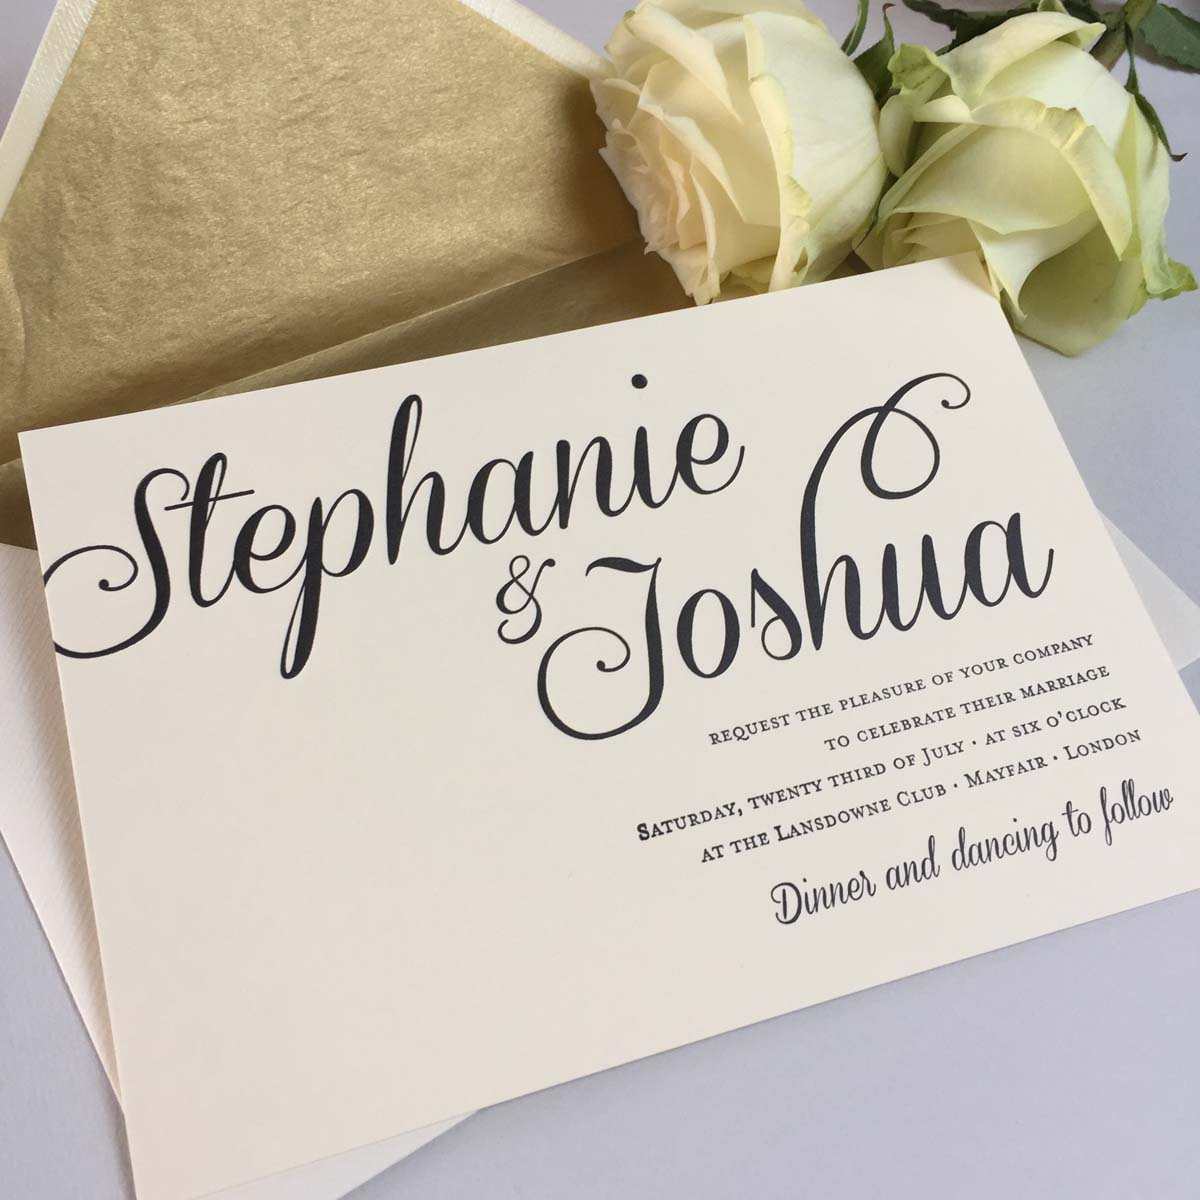 Stephanie black wedding invitations